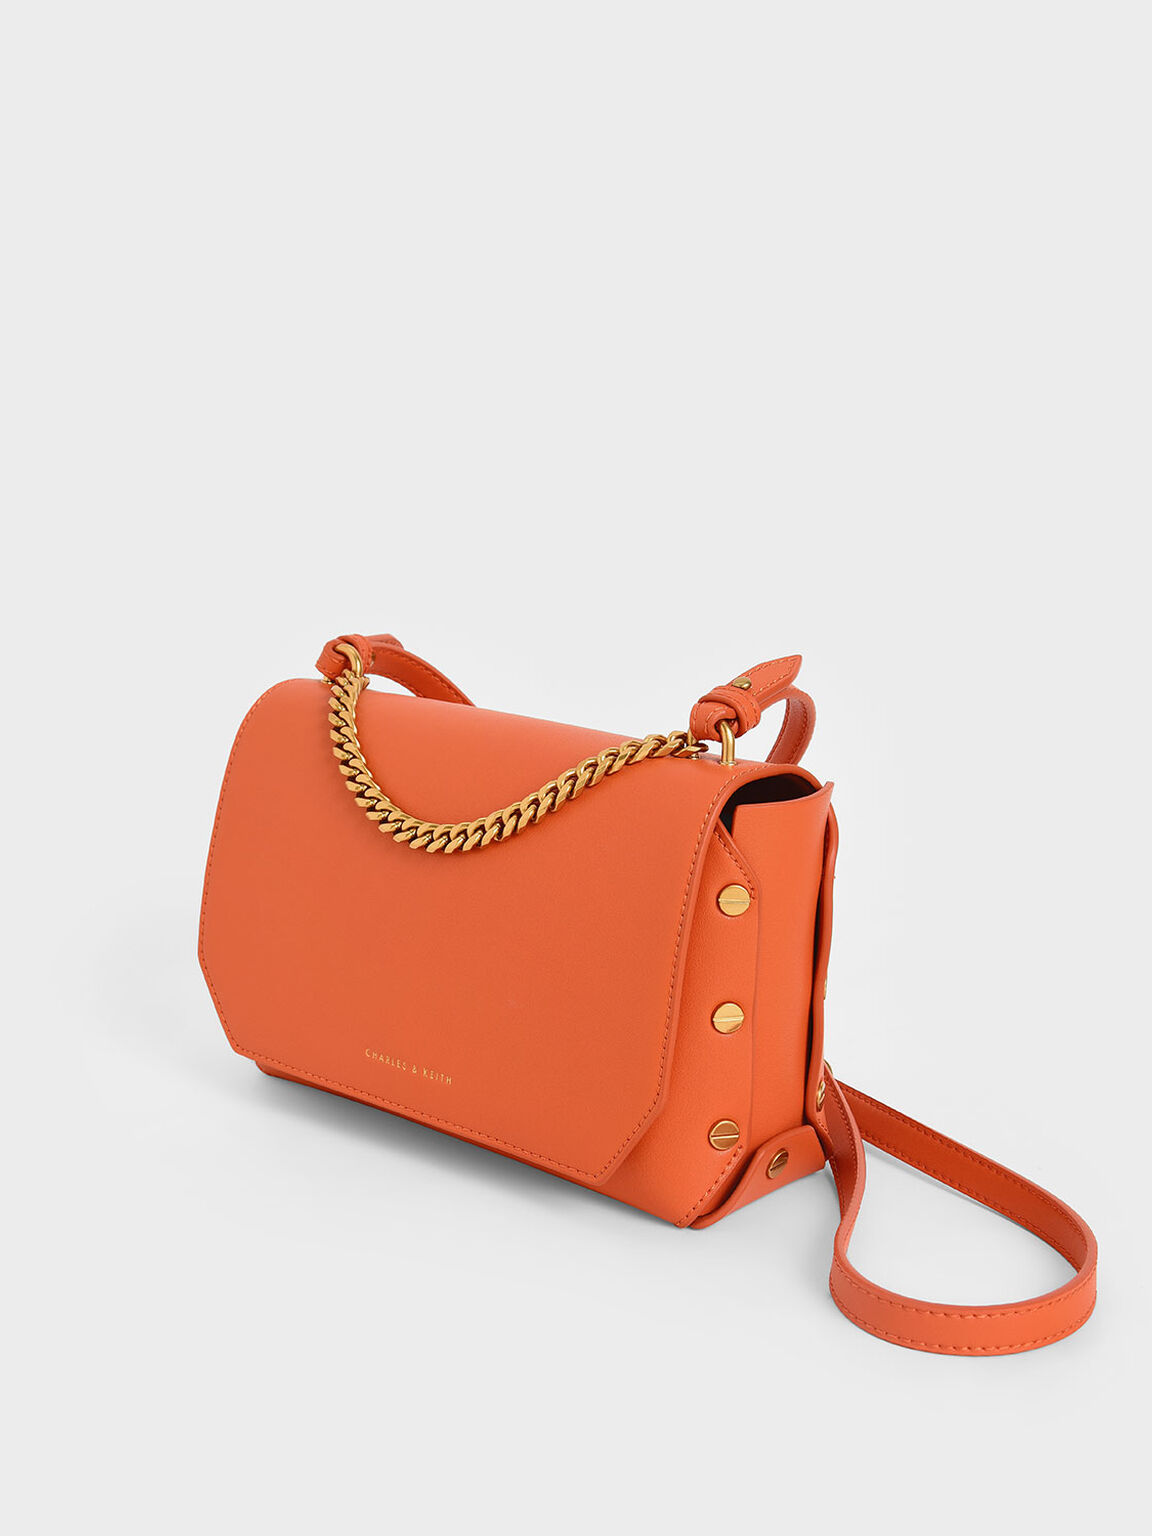 Studded Chain Link Shoulder Bag, Orange, hi-res